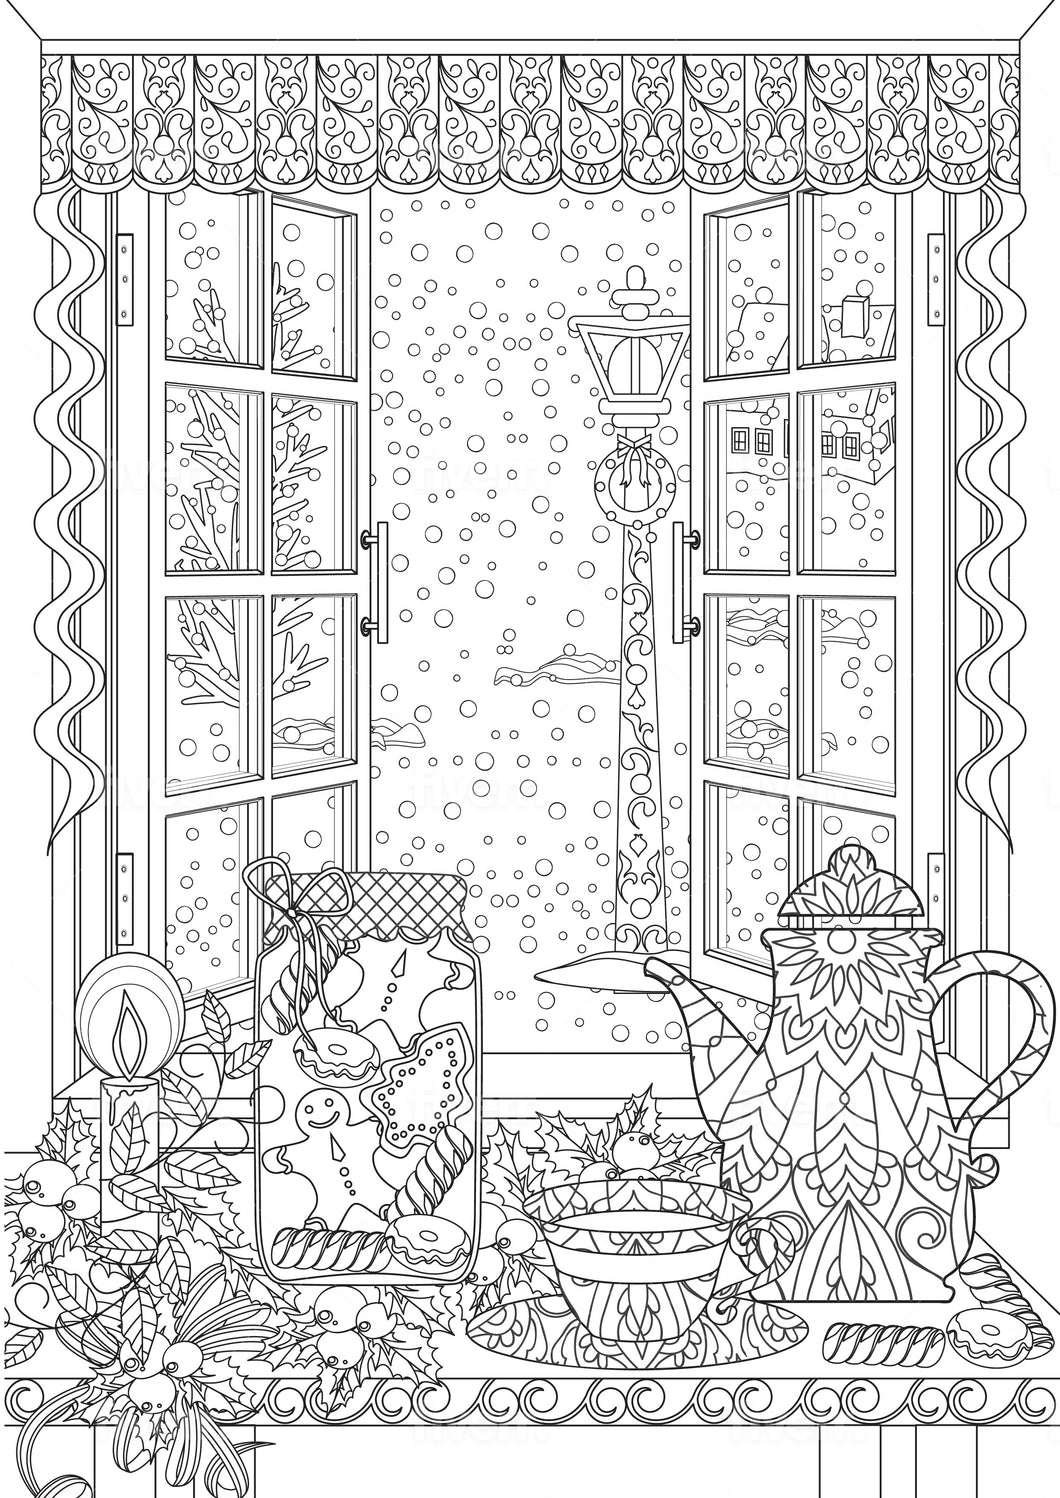 Christmas #1 Coloring Sheet